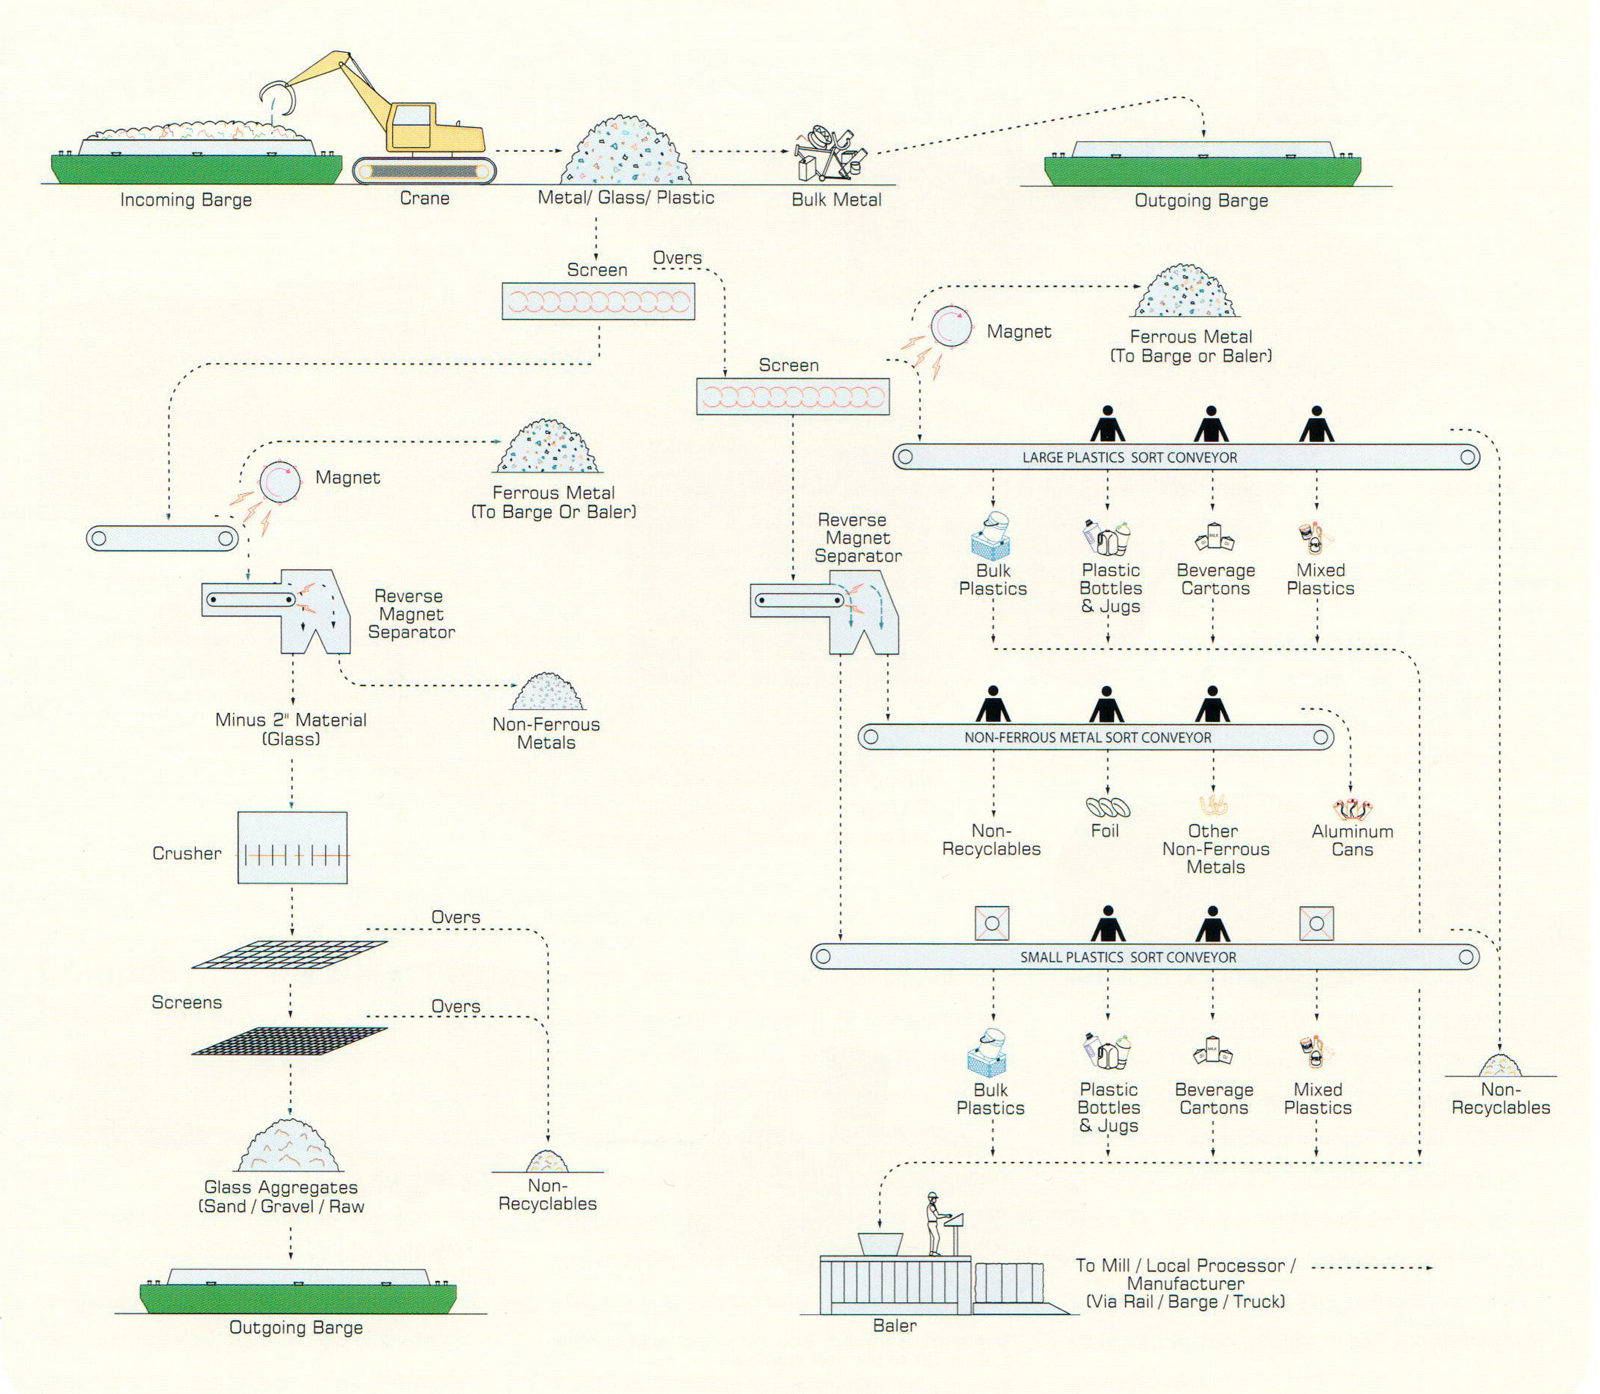 The-Works-Garbage-Processing-page-195